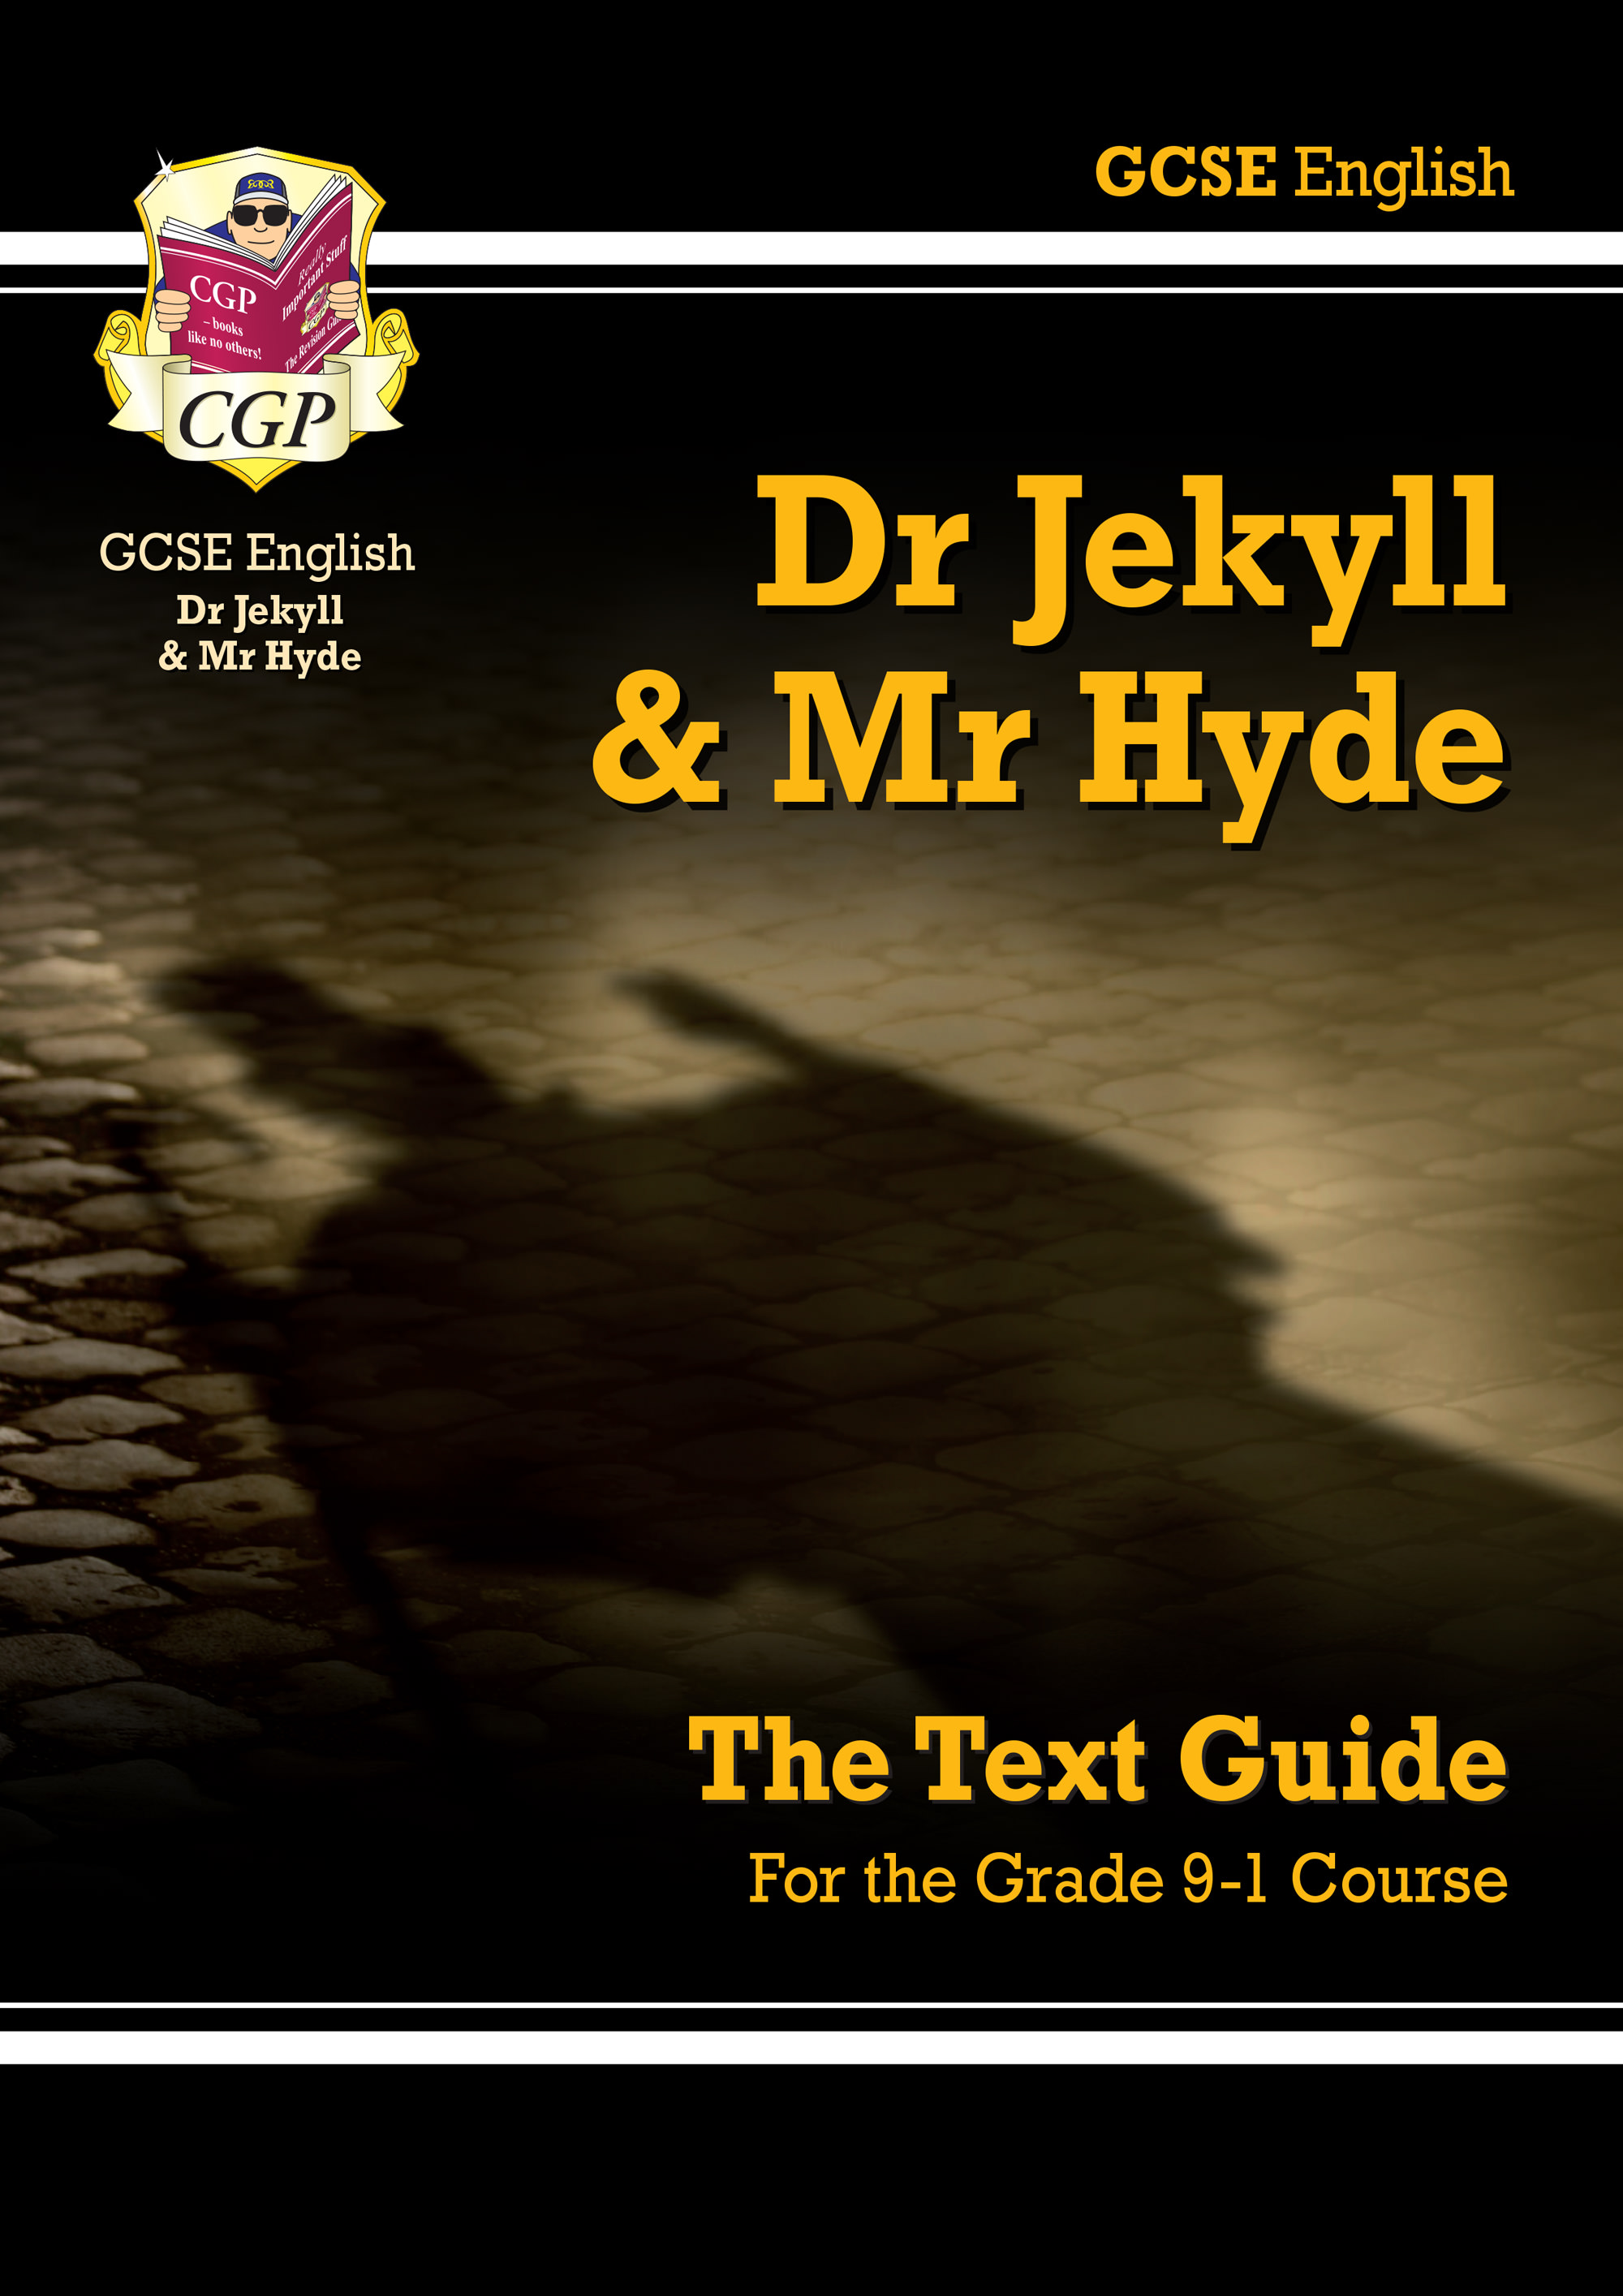 ETJH41 - Grade 9-1 GCSE English Text Guide - Dr Jekyll and Mr Hyde